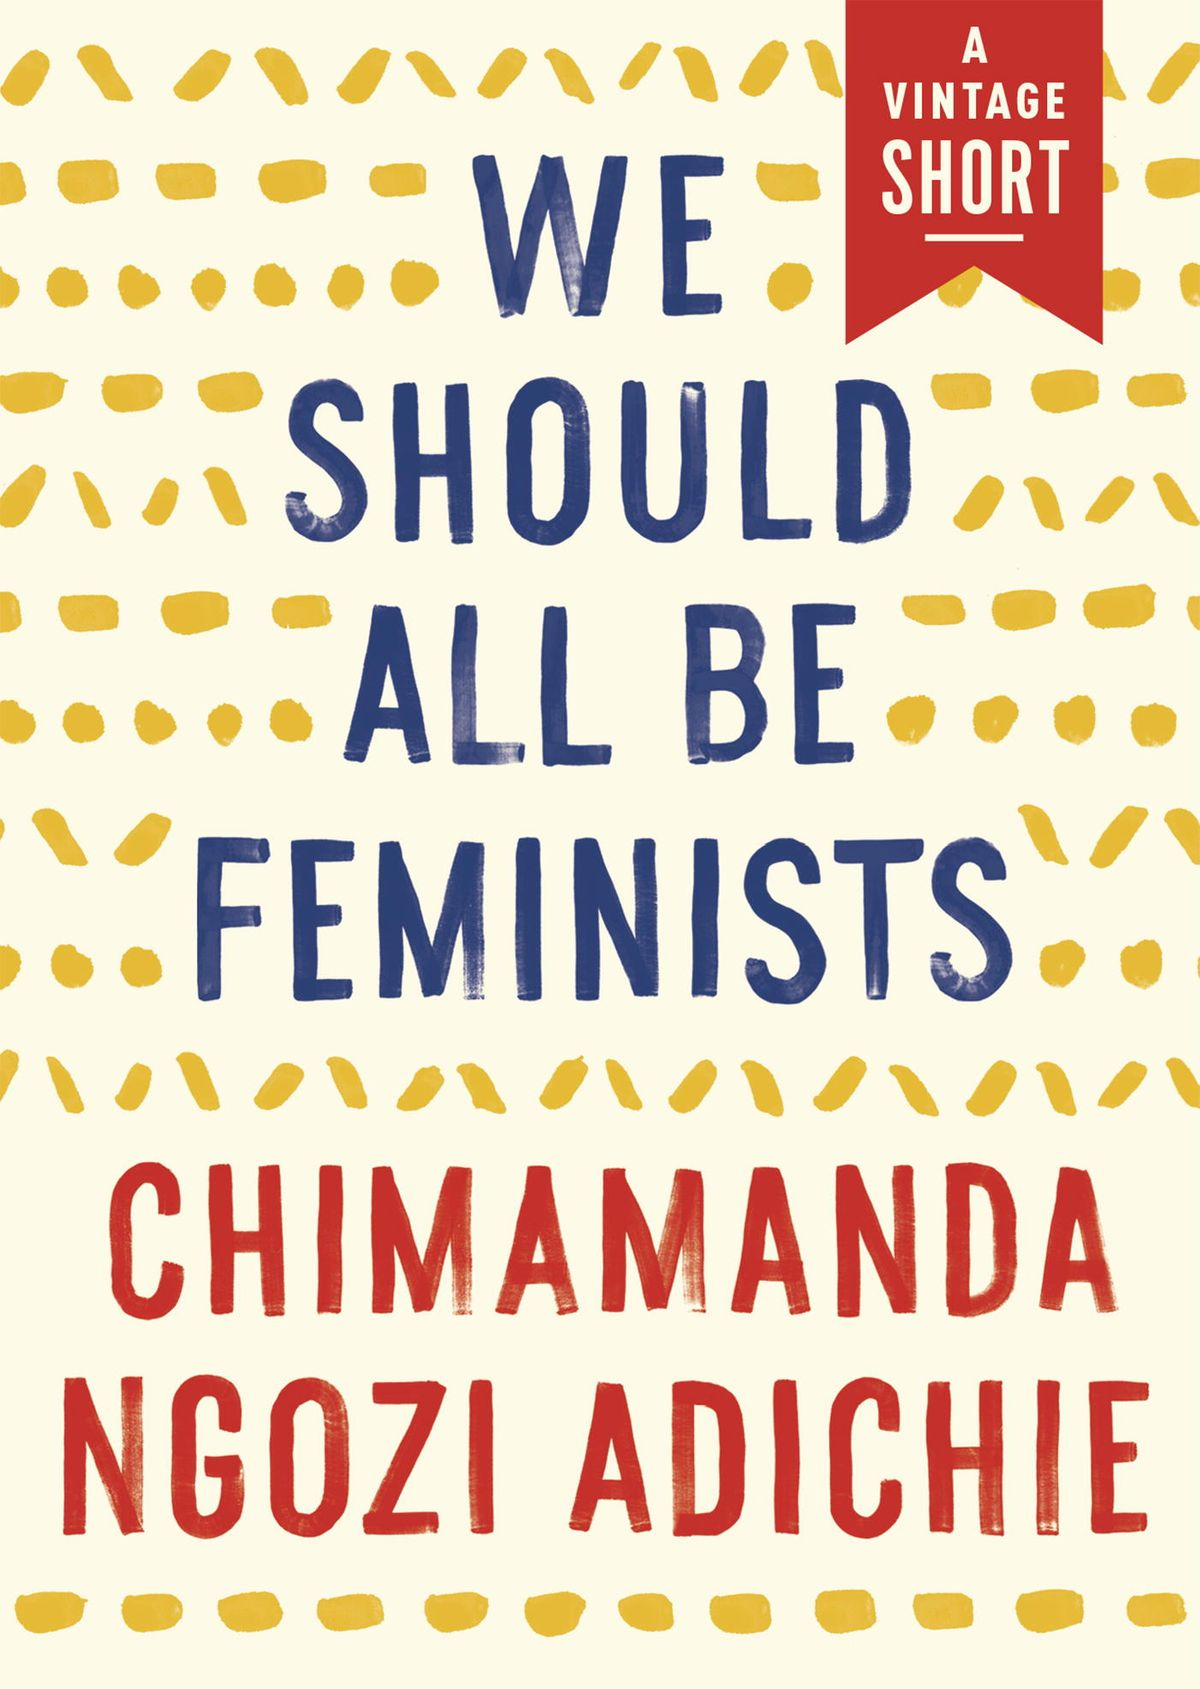 9 Books By Female Activists That Every Woman Should Read